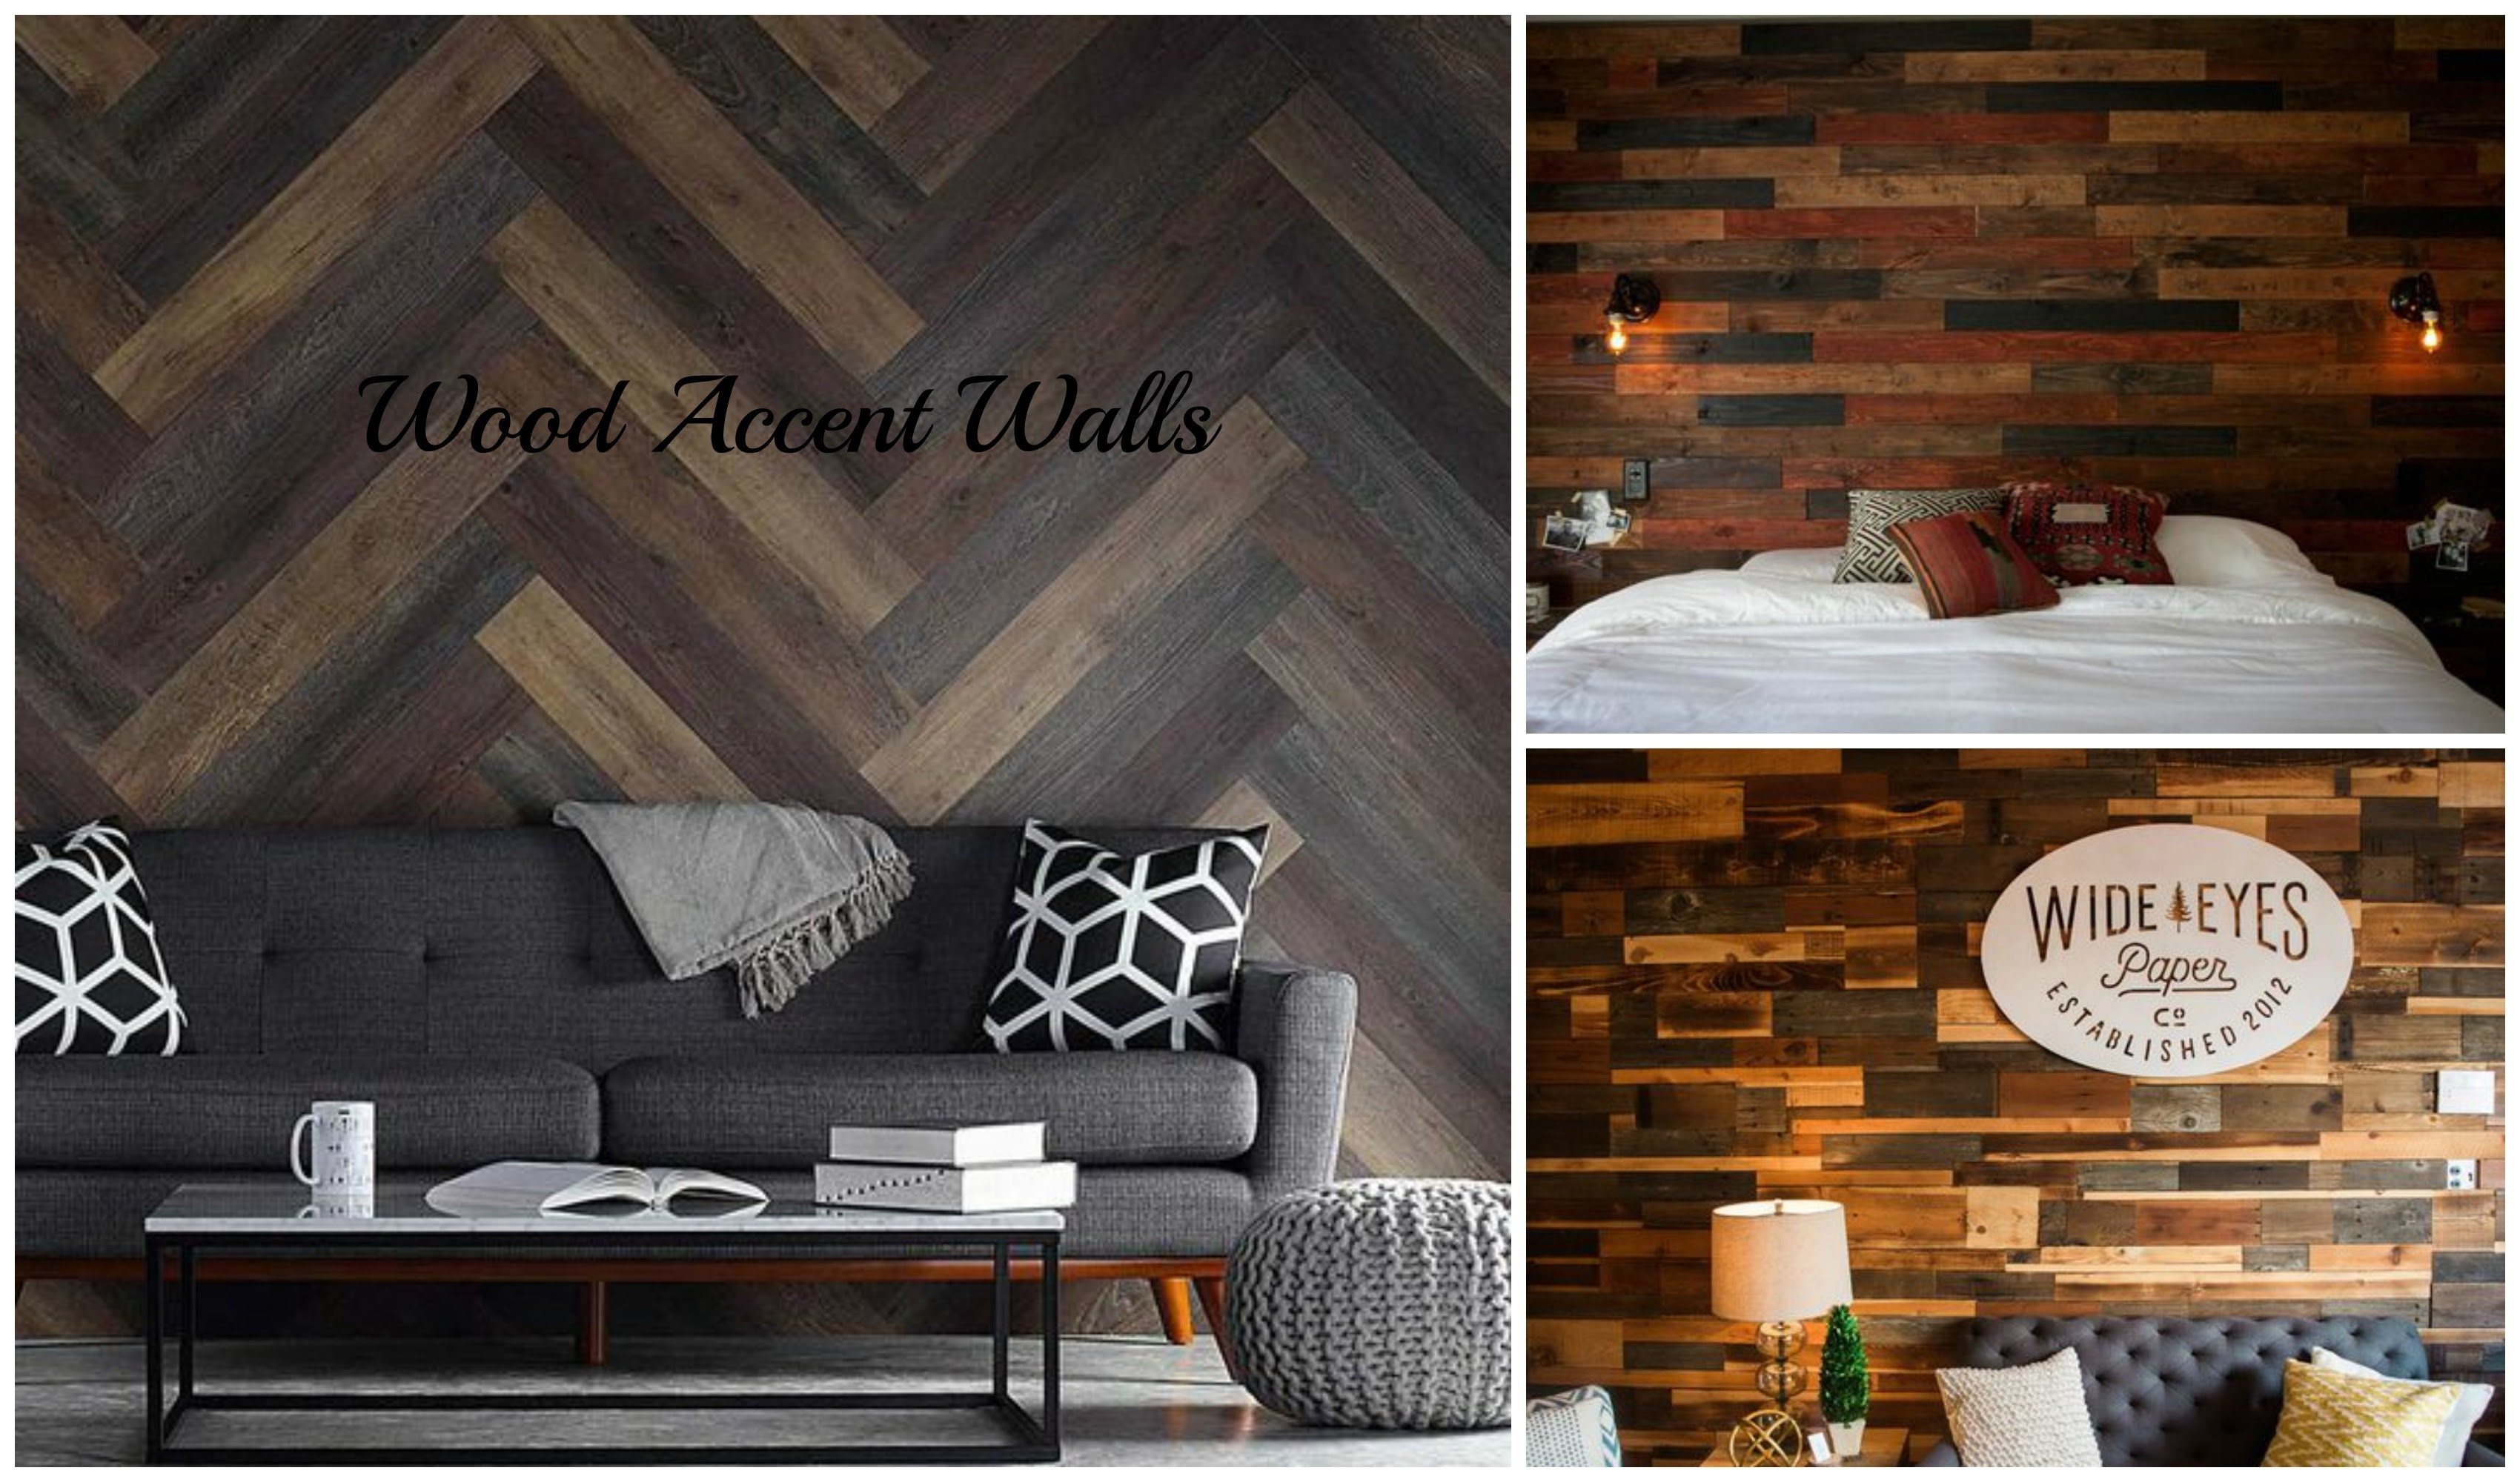 Wood Accent Wall | Pallet Wall Ideas – Youtube With Regard To Most Up To Date Wood Pallets Wall Accents (View 11 of 15)